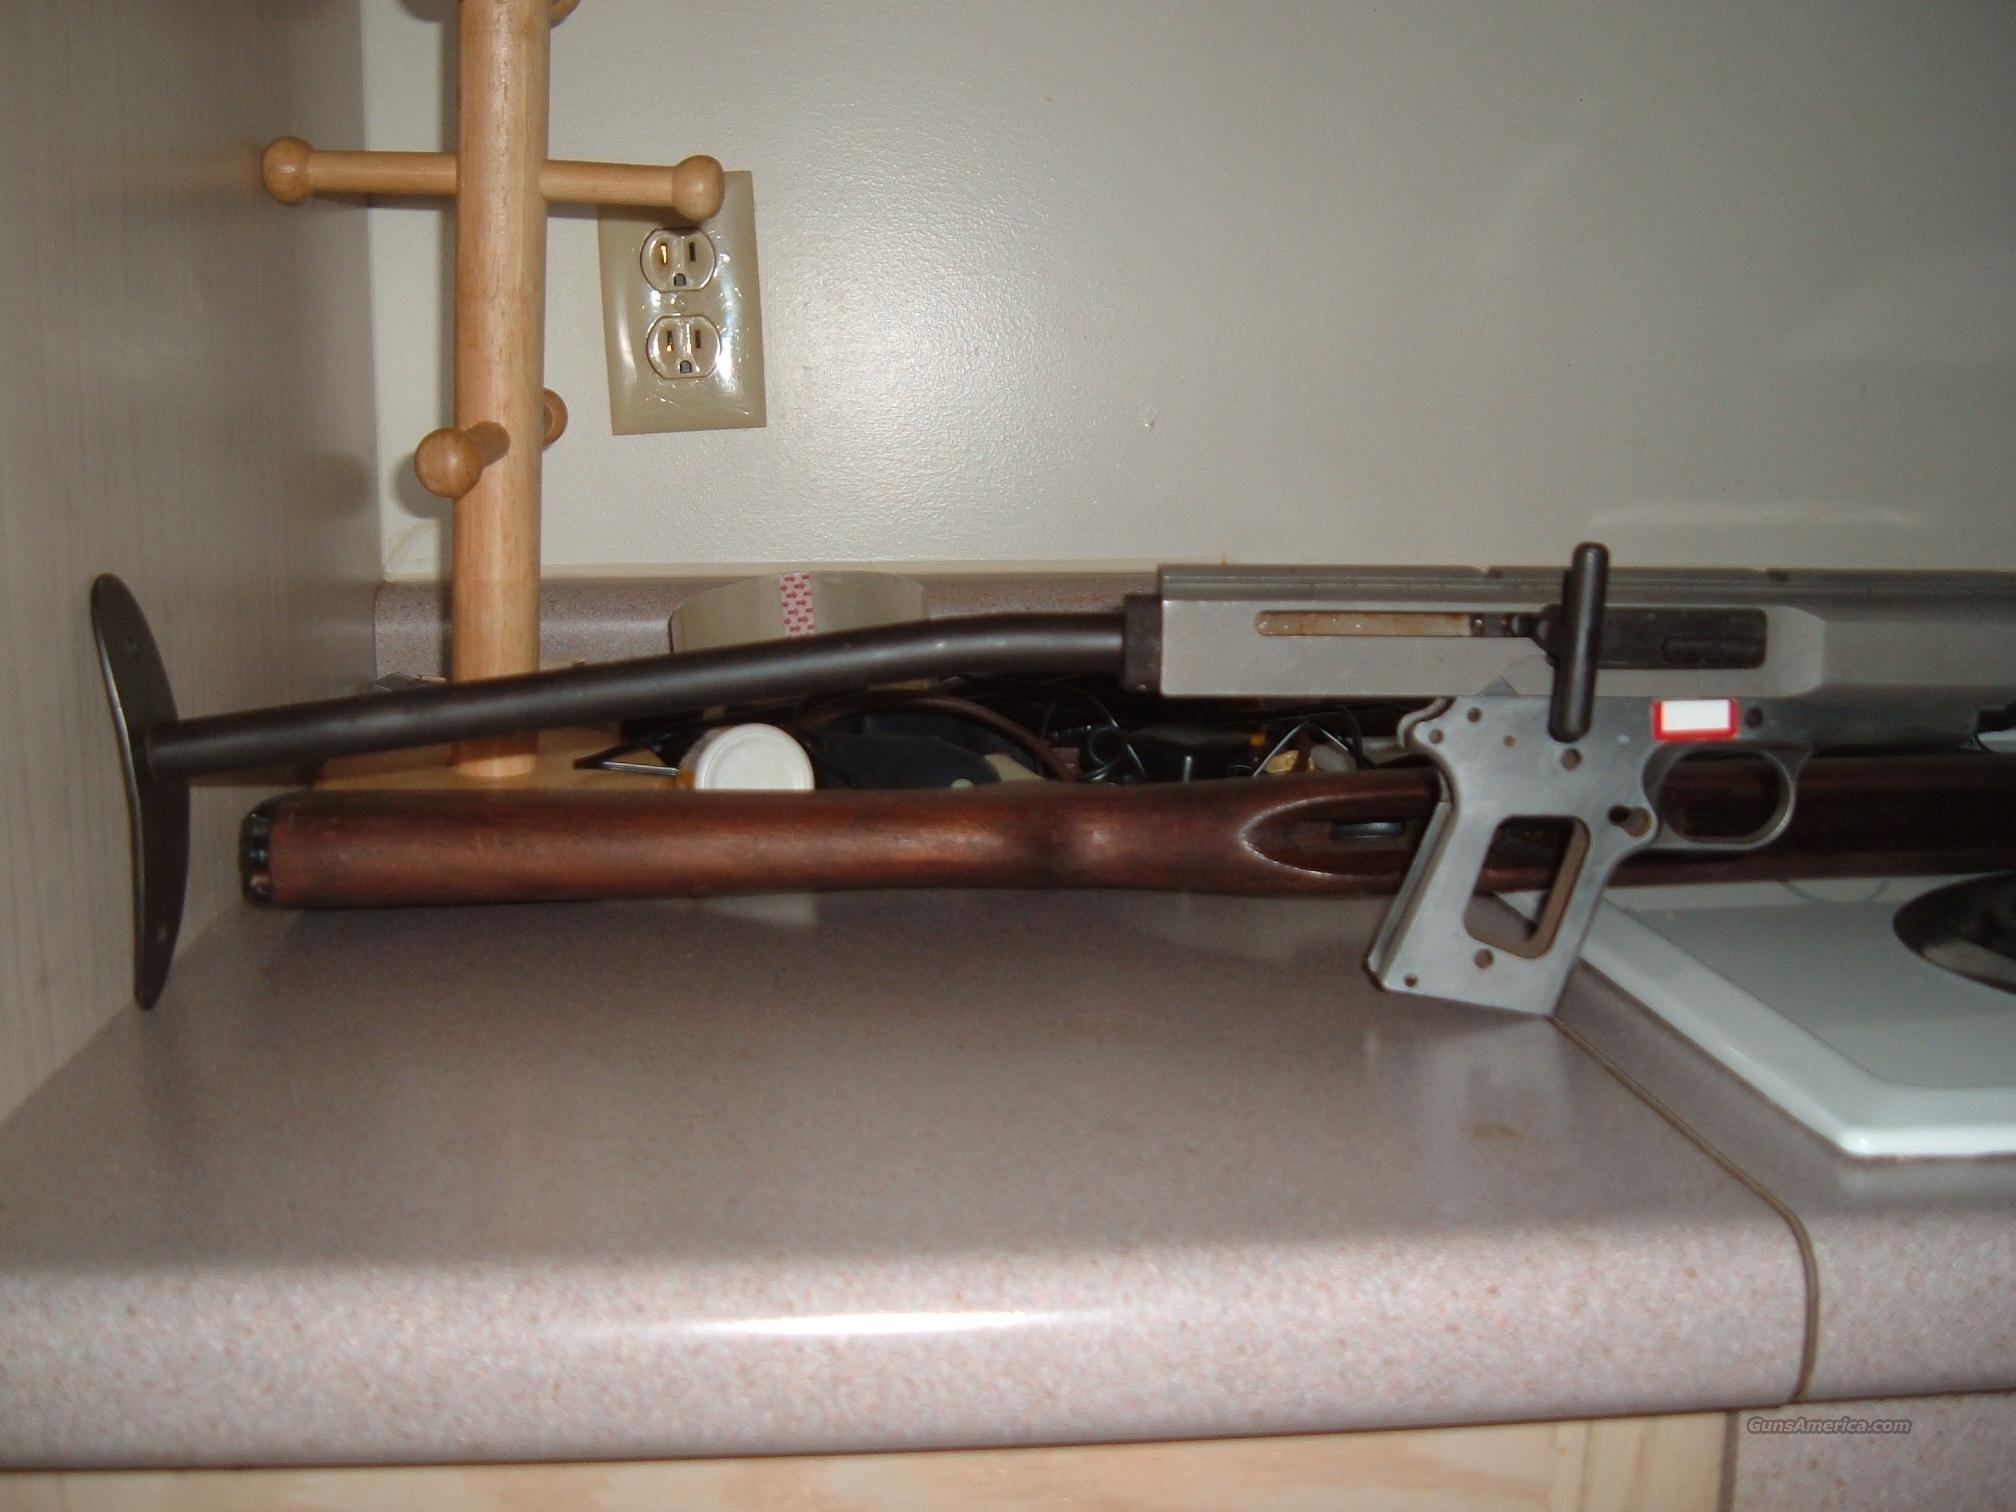 1911 rifle kit - Best bed and beyond